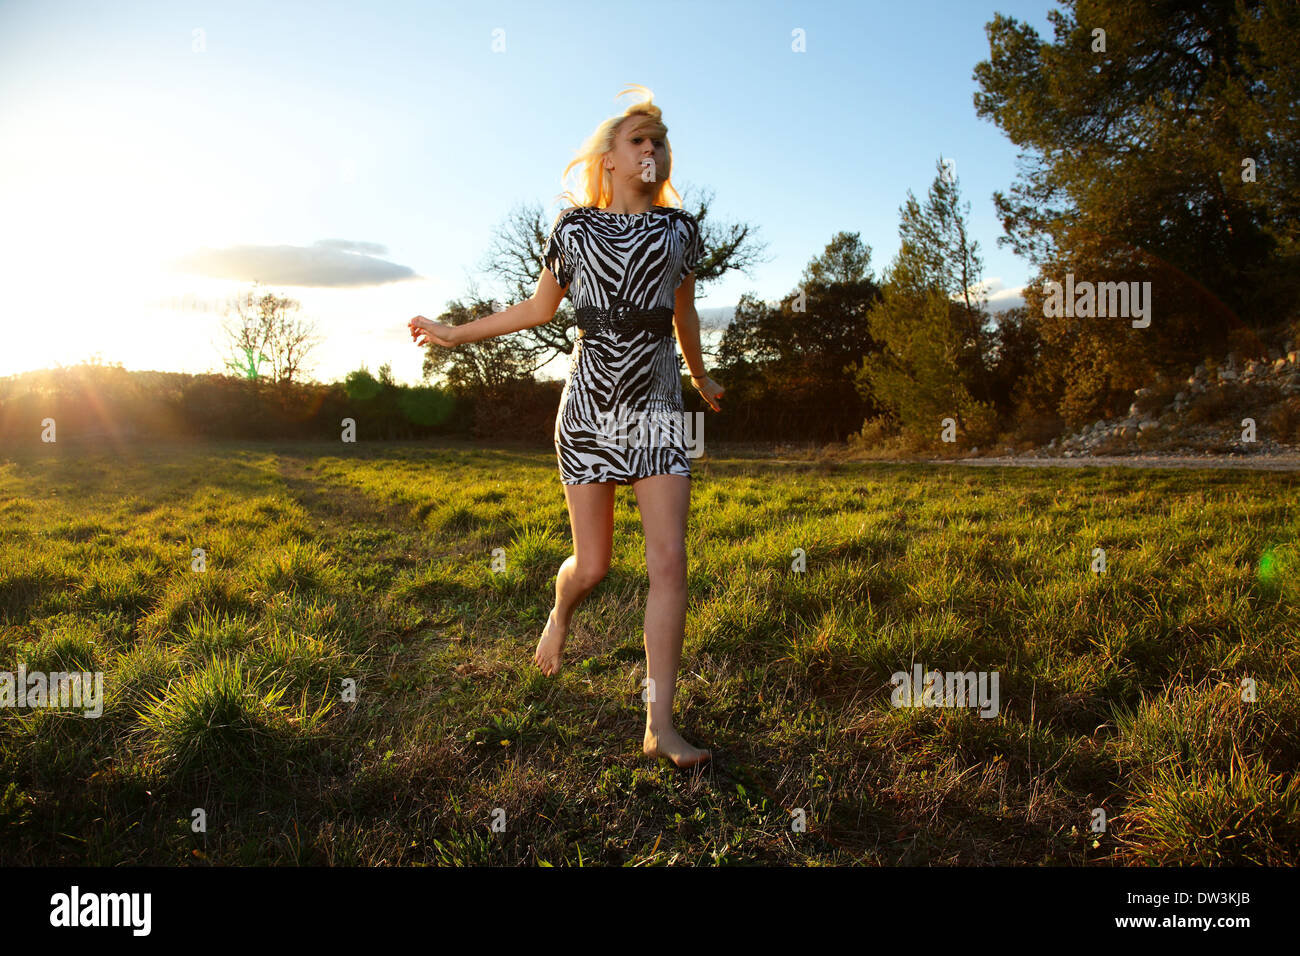 beautiful young woman running barefoot in meadow wearing a black and white zebra dress at dusk - Stock Image